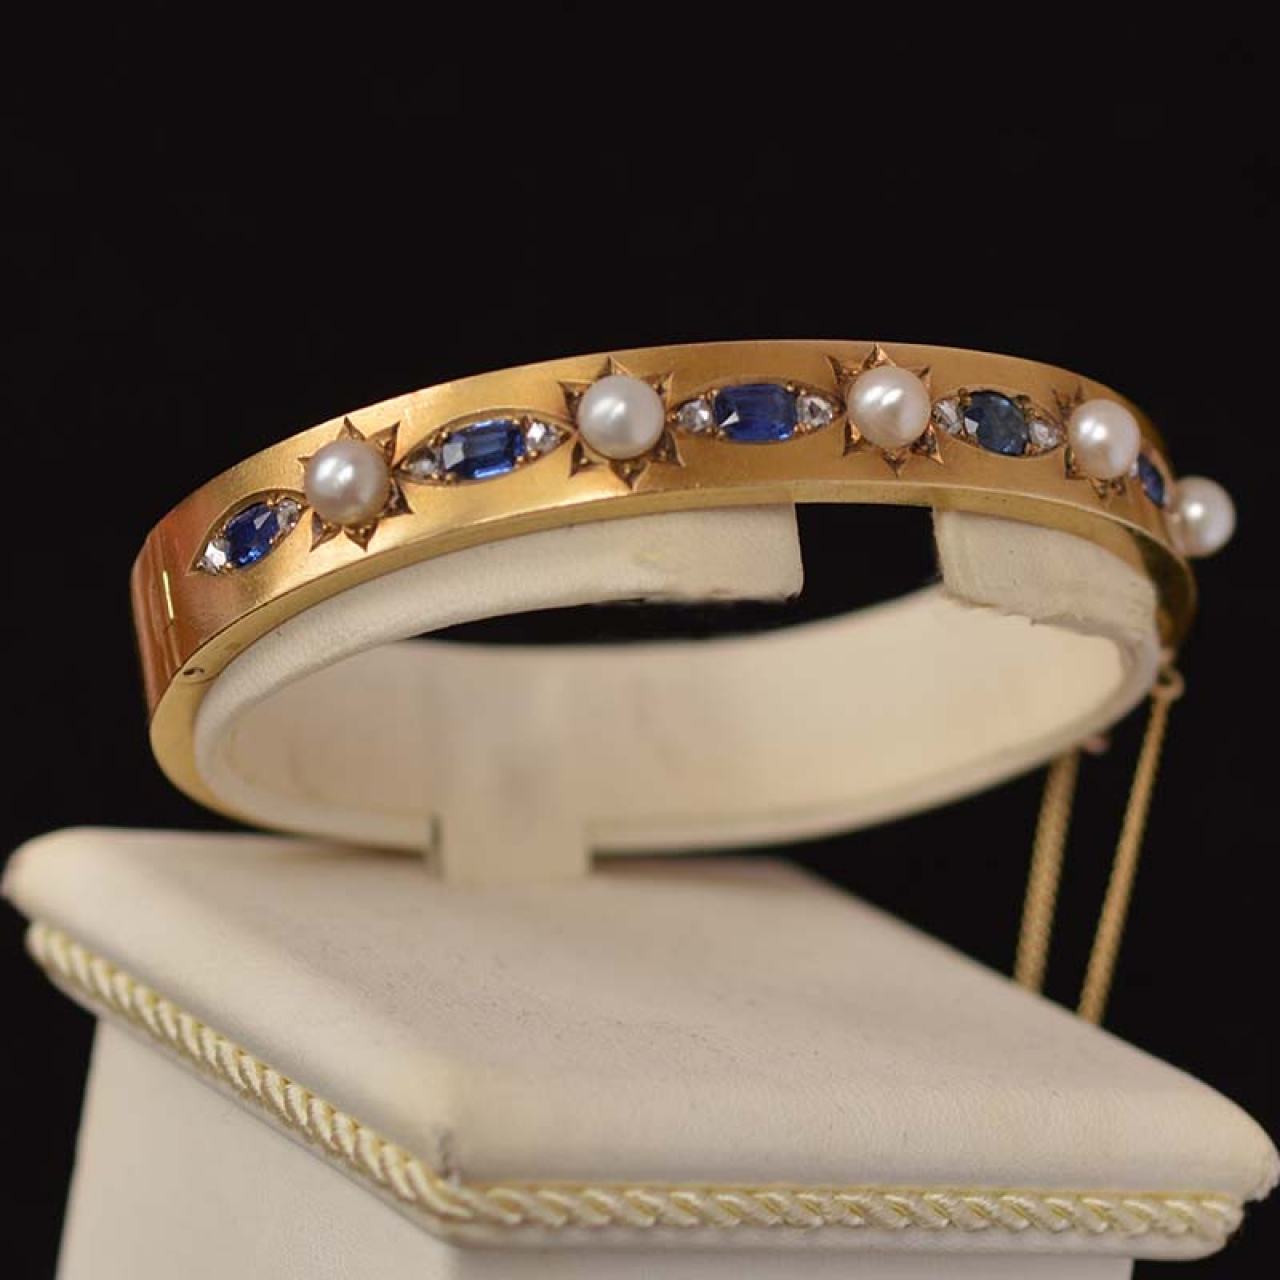 bangle panther bangles authentic cartier fortrove products diamond panthere bracelet and gold sapphire